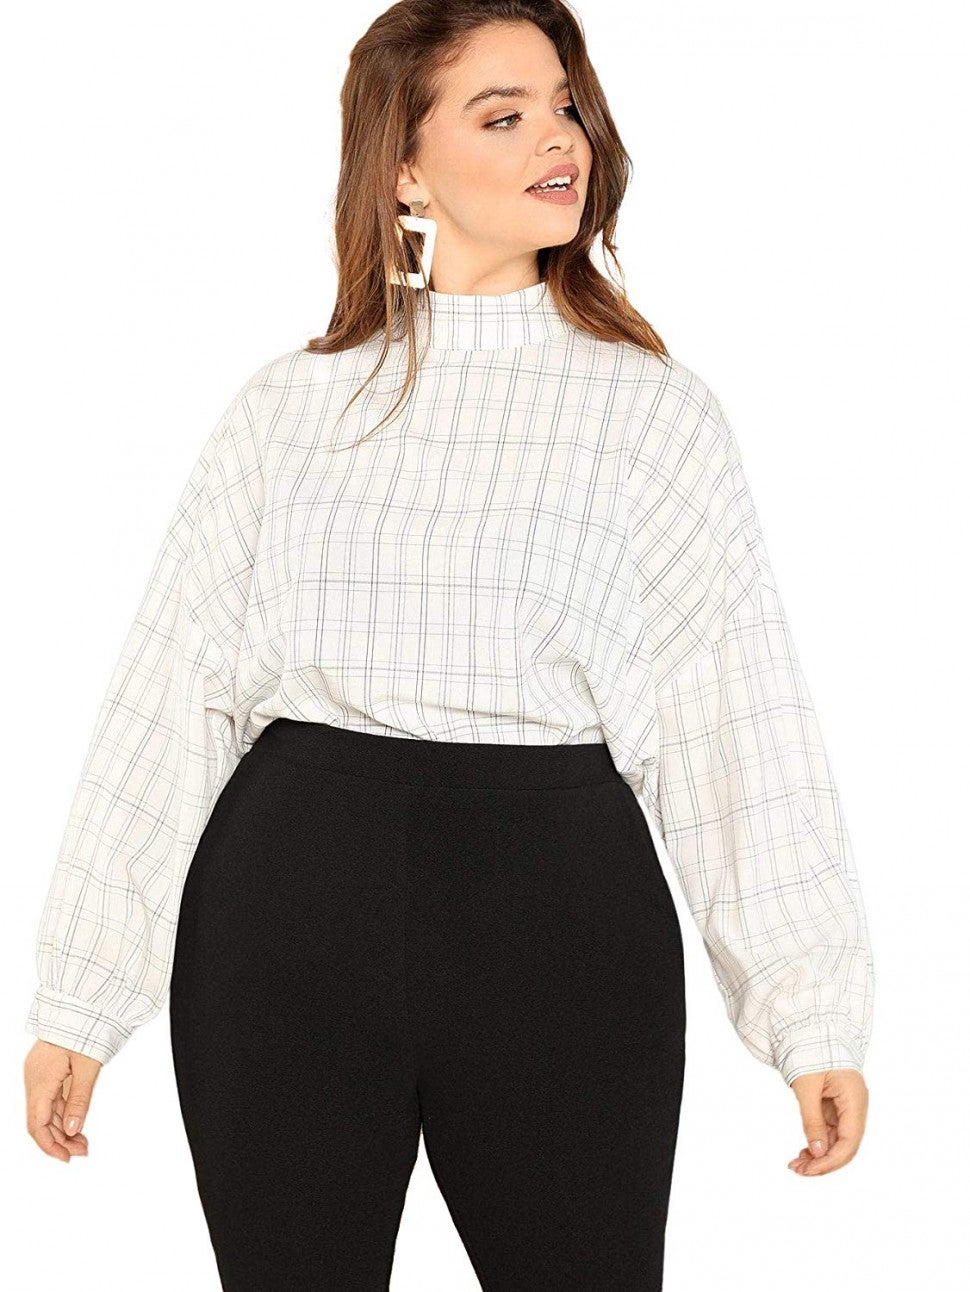 Romwe plus size plaid blouse